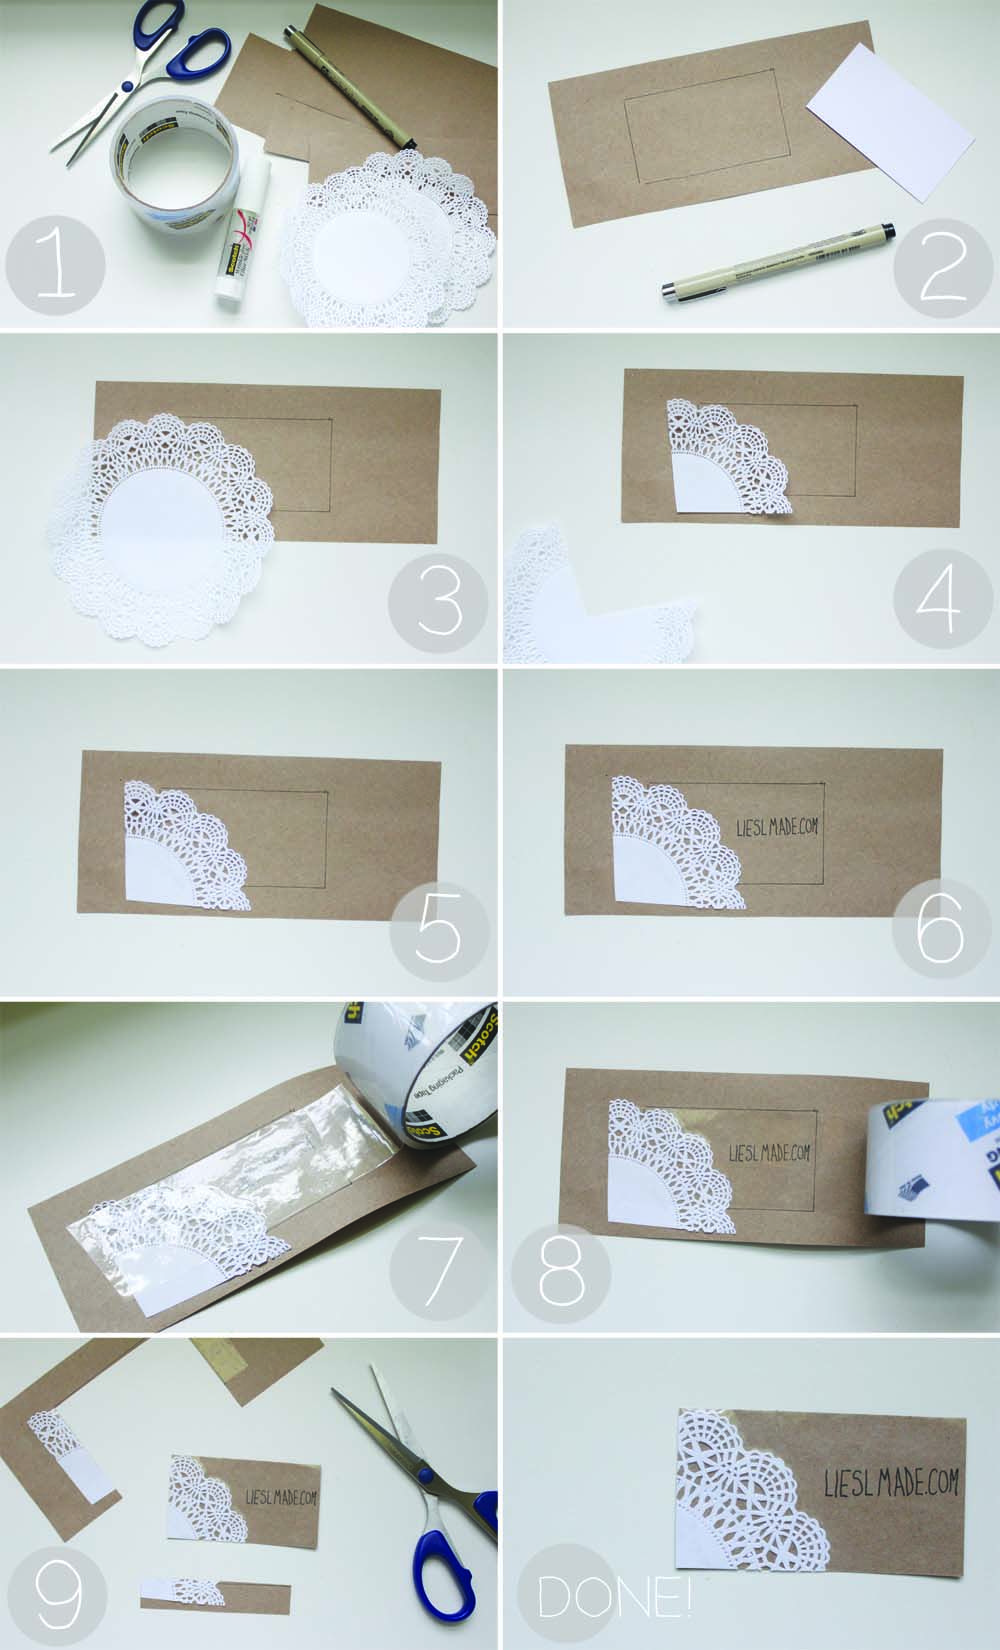 Simple kraft paper and lace doily business card diy liesl made simple kraft paper and lace doily business card diy liesl made reheart Gallery